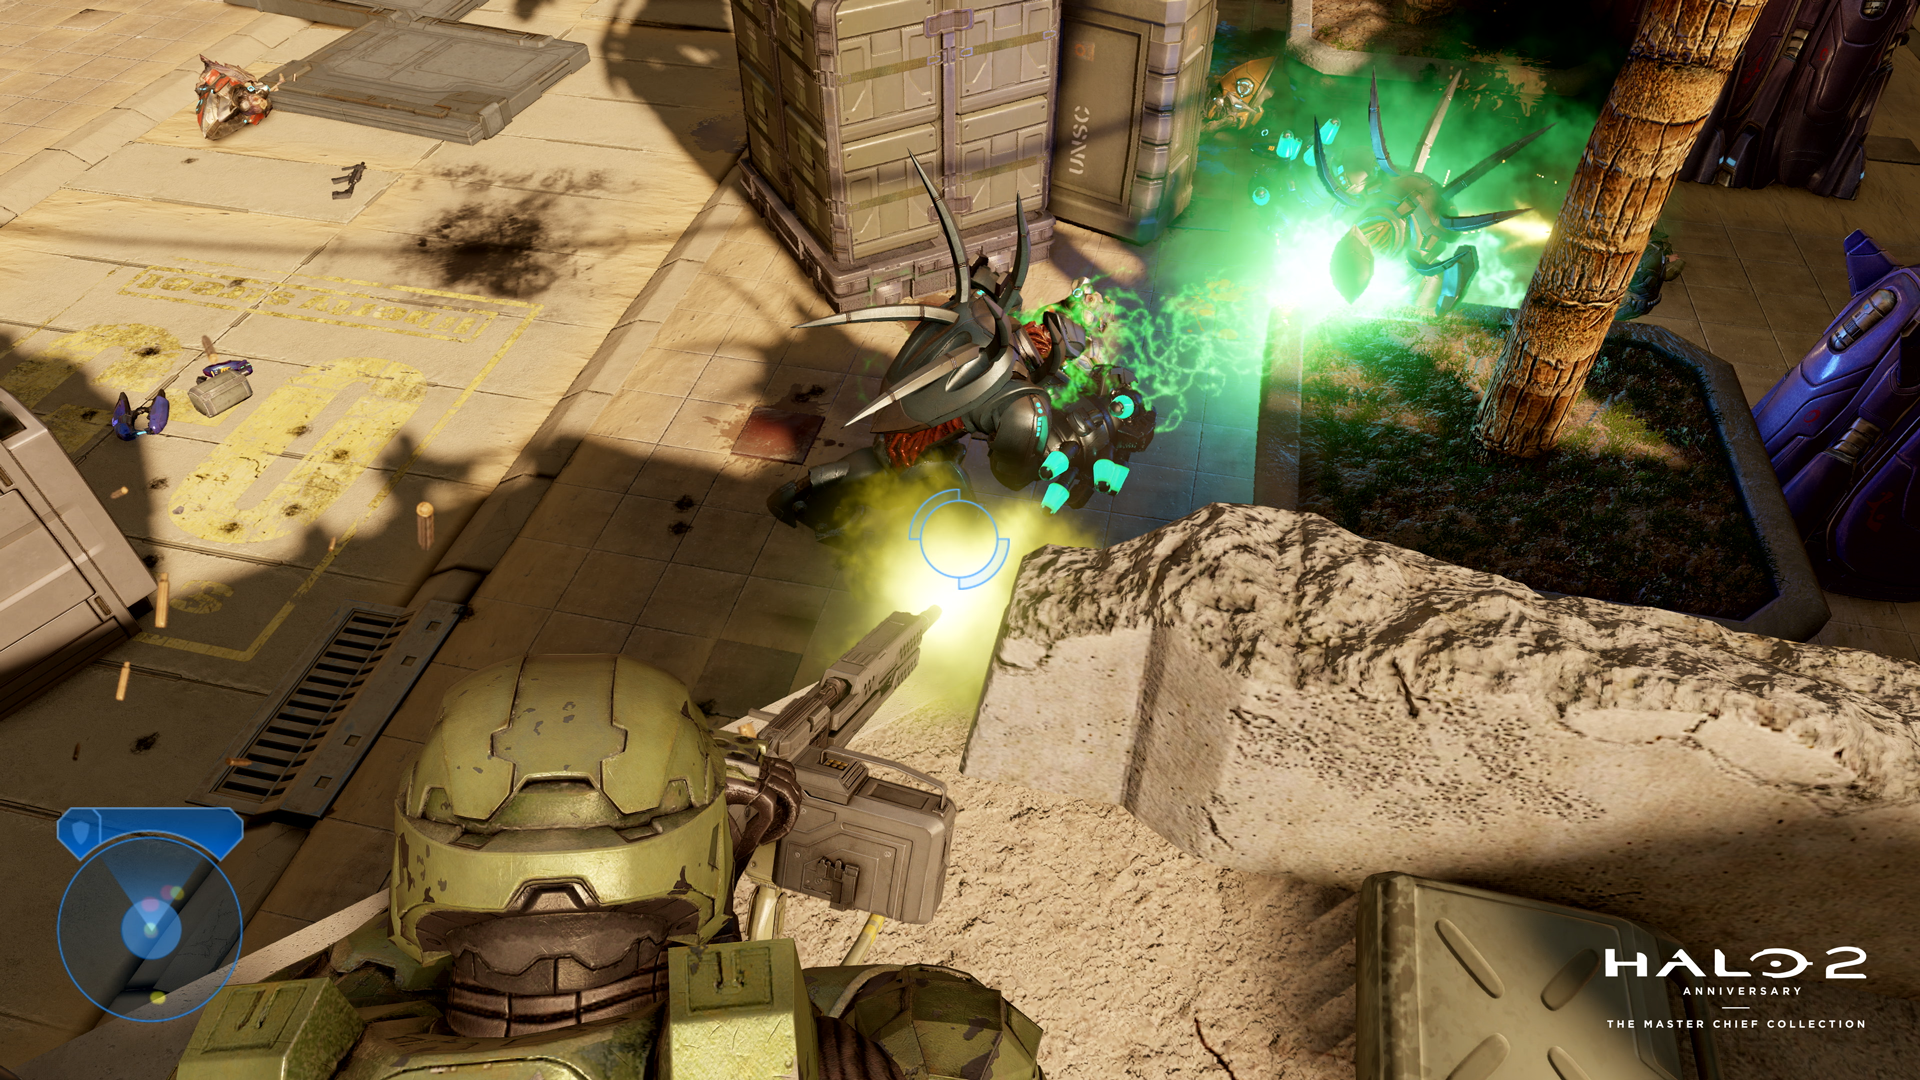 Halo-Master-Chief-Collection-2020_Halo2Anniversary_Campaign_02_Watermarked_1920x1080